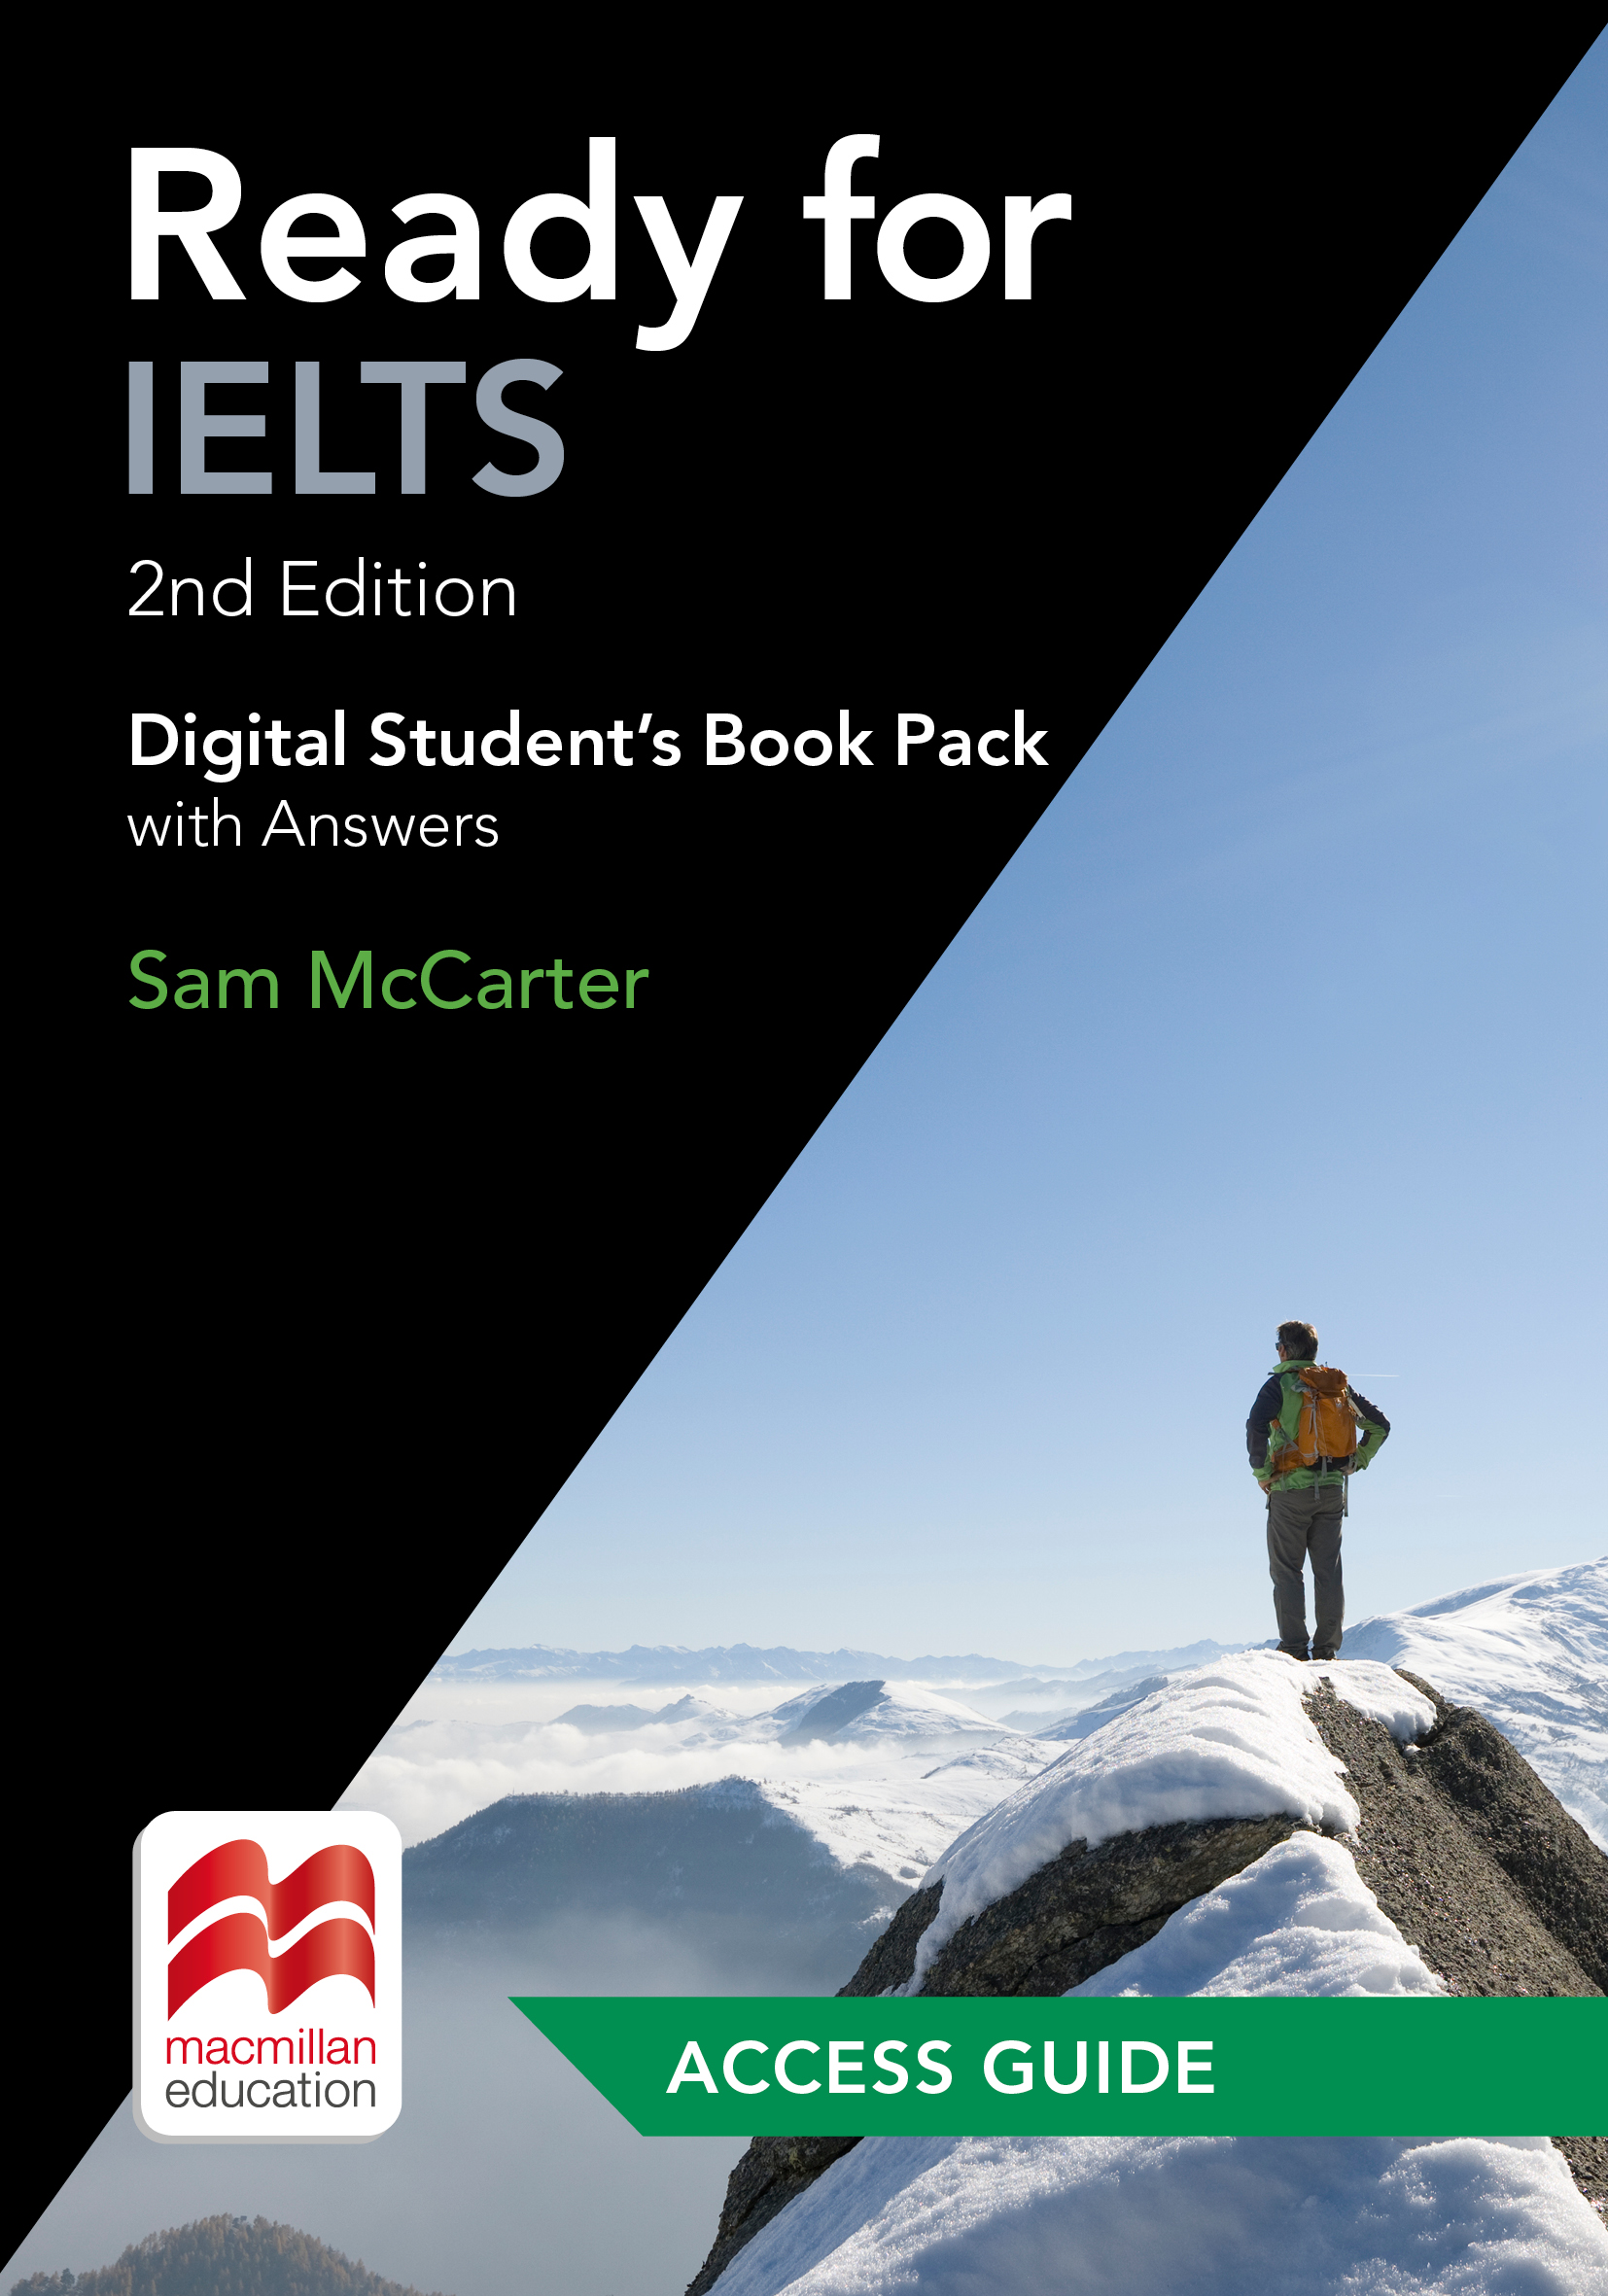 Ready for IELTS 2nd Edition Digital Student